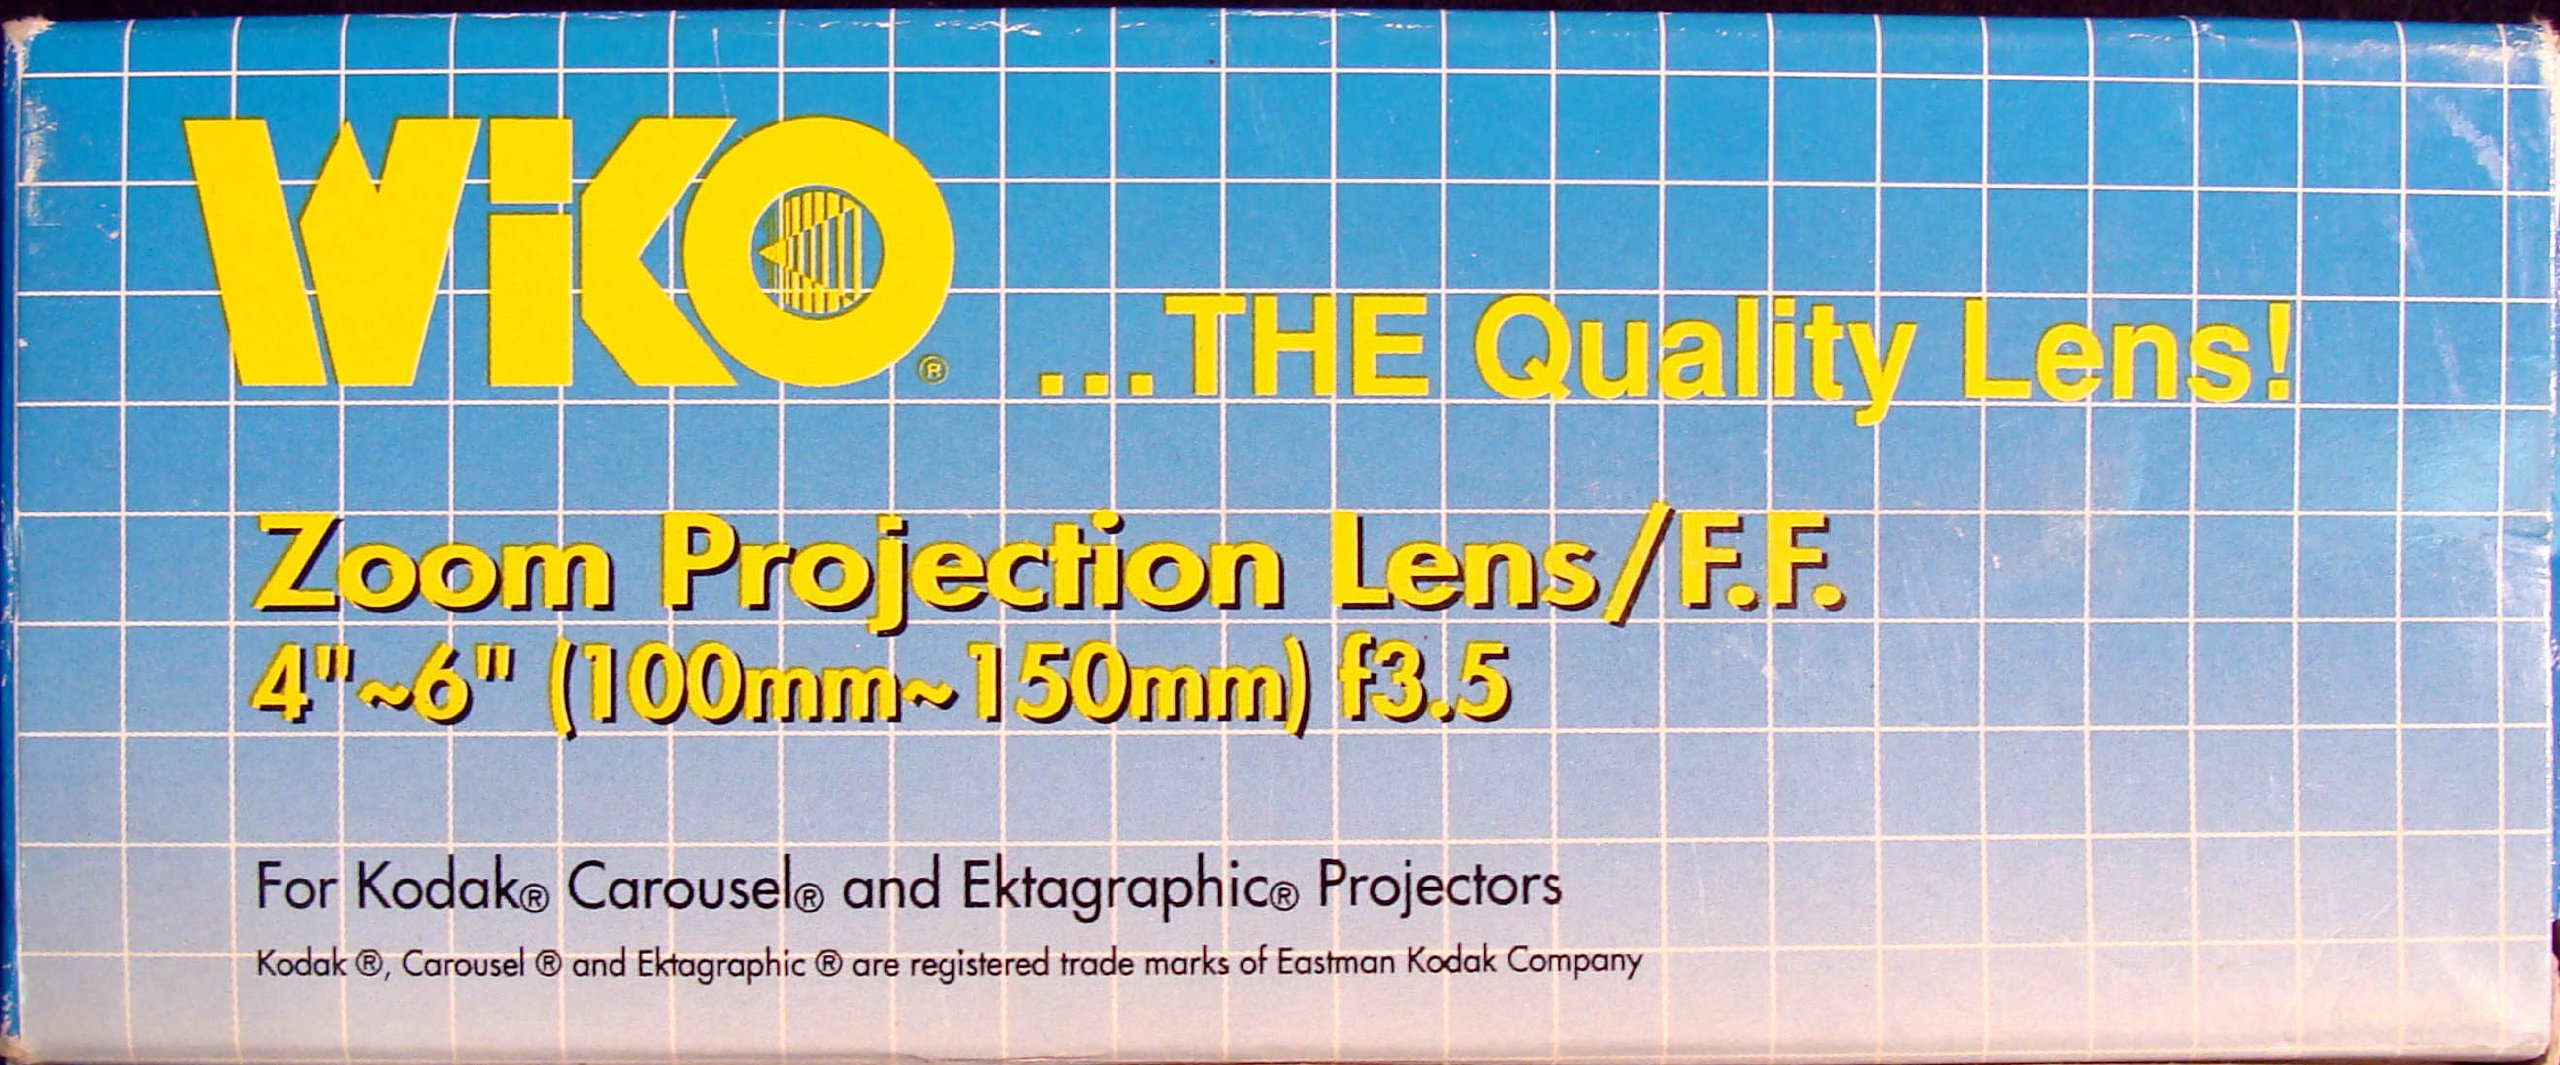 Zoom Projection Lens/F.F. 4''-6'' (100mm-150mm) f3.5 For Kodak, Carousel and Ektagraphic Projectors by WiKO, Ltd.